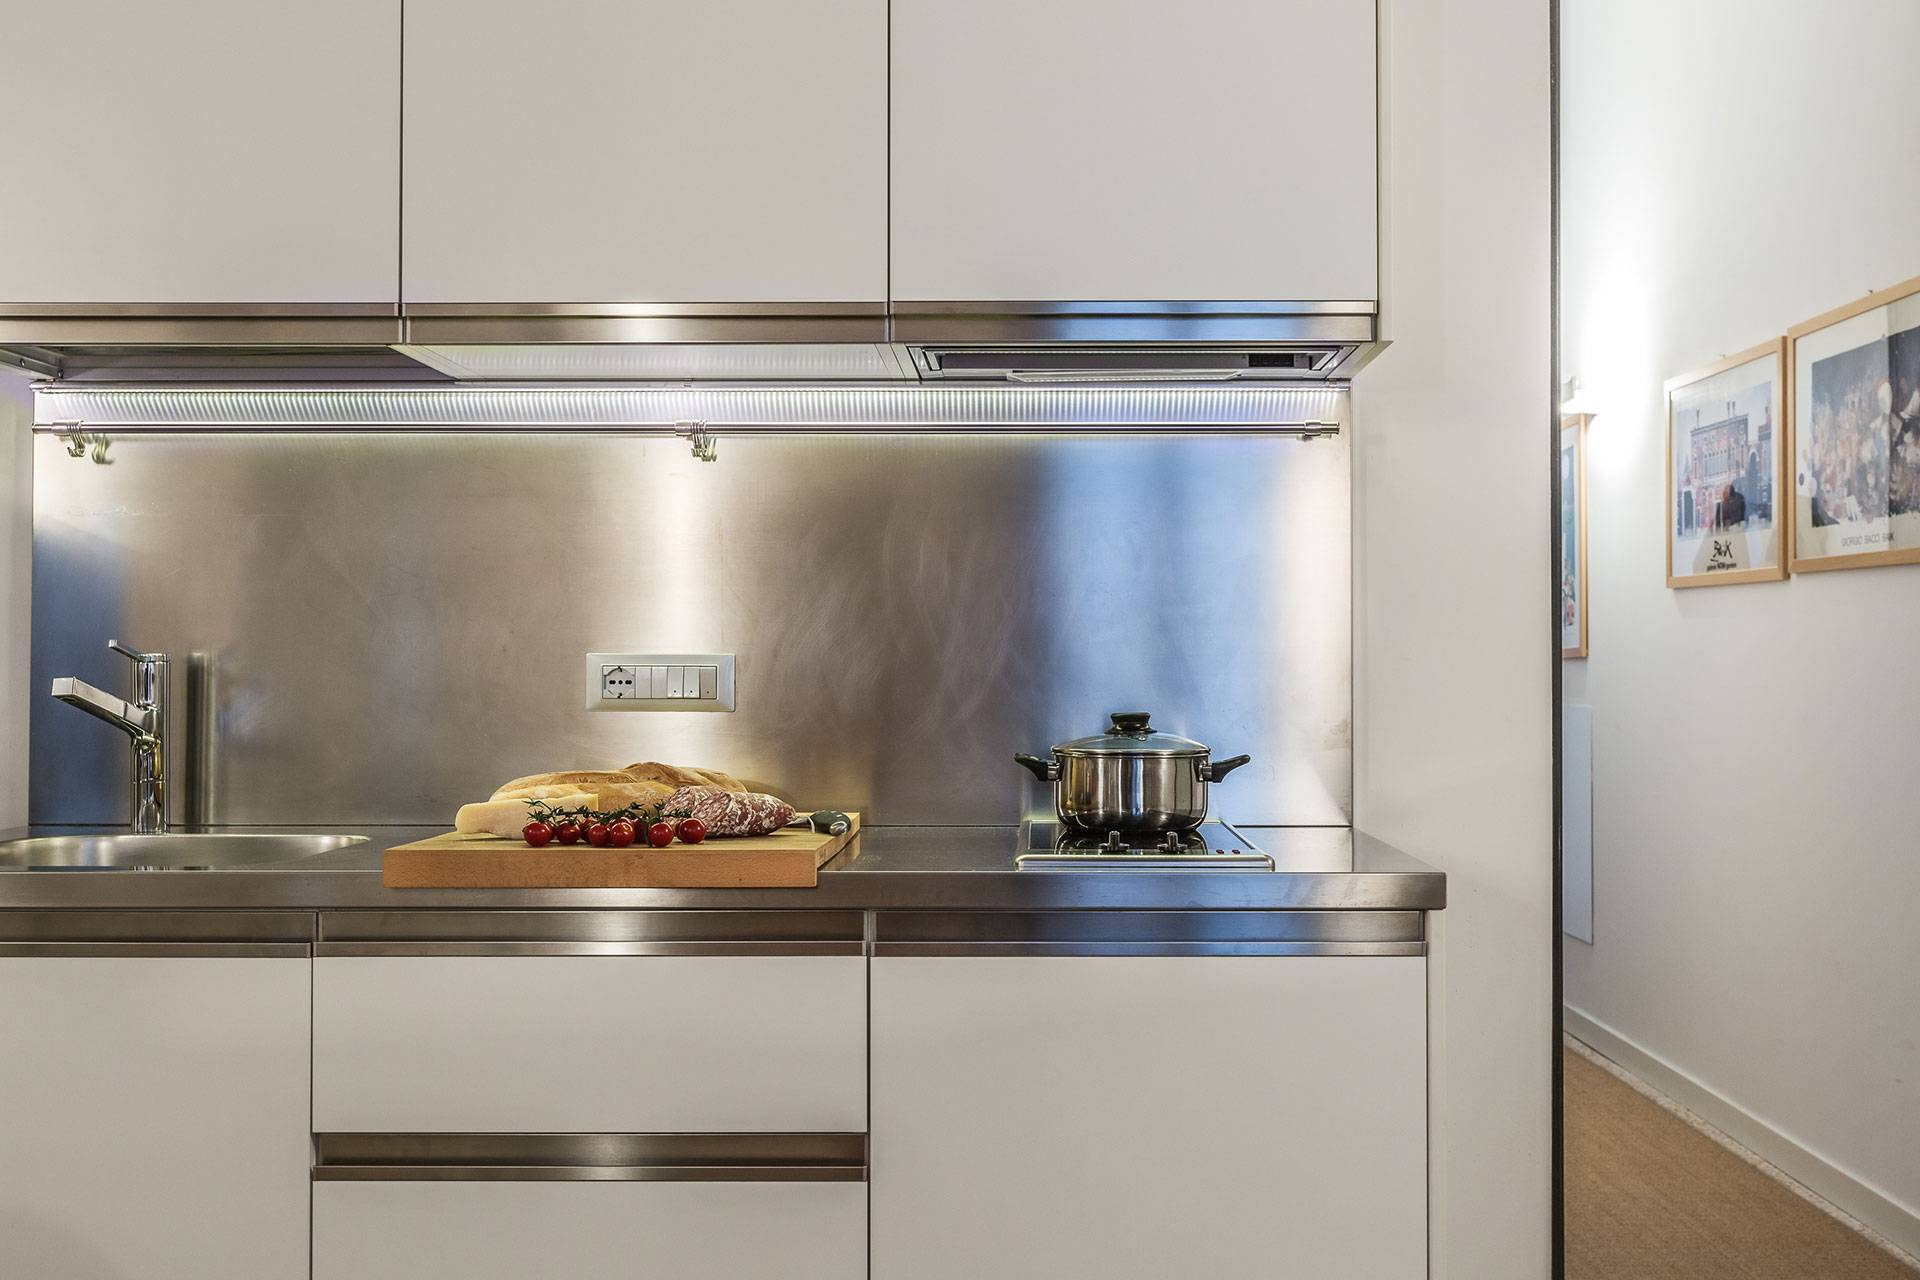 stainess steel kitchen and top level appliances